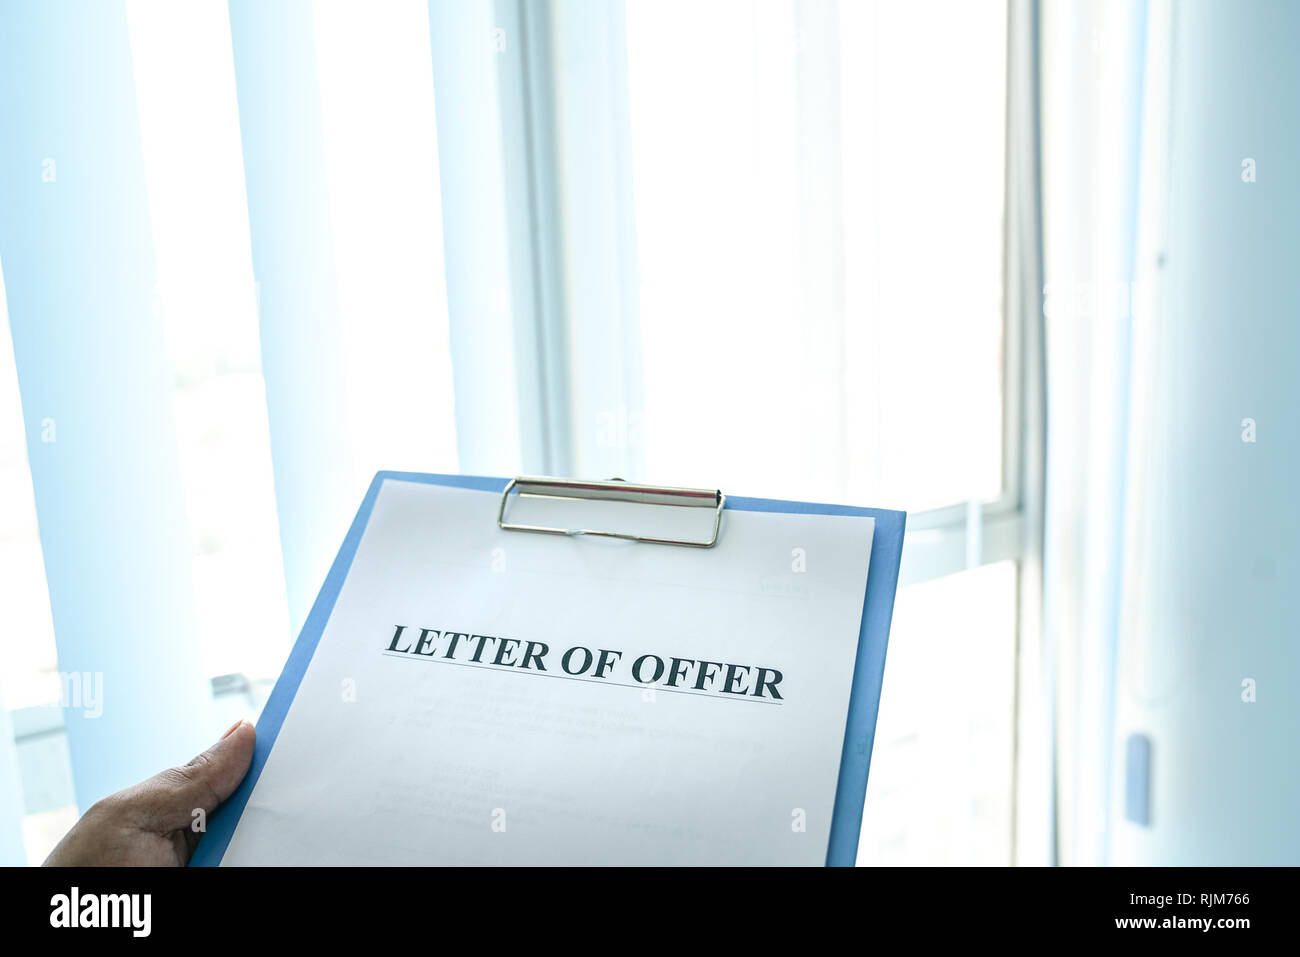 Hand holding letter of offer clipped on a board - Stock Image